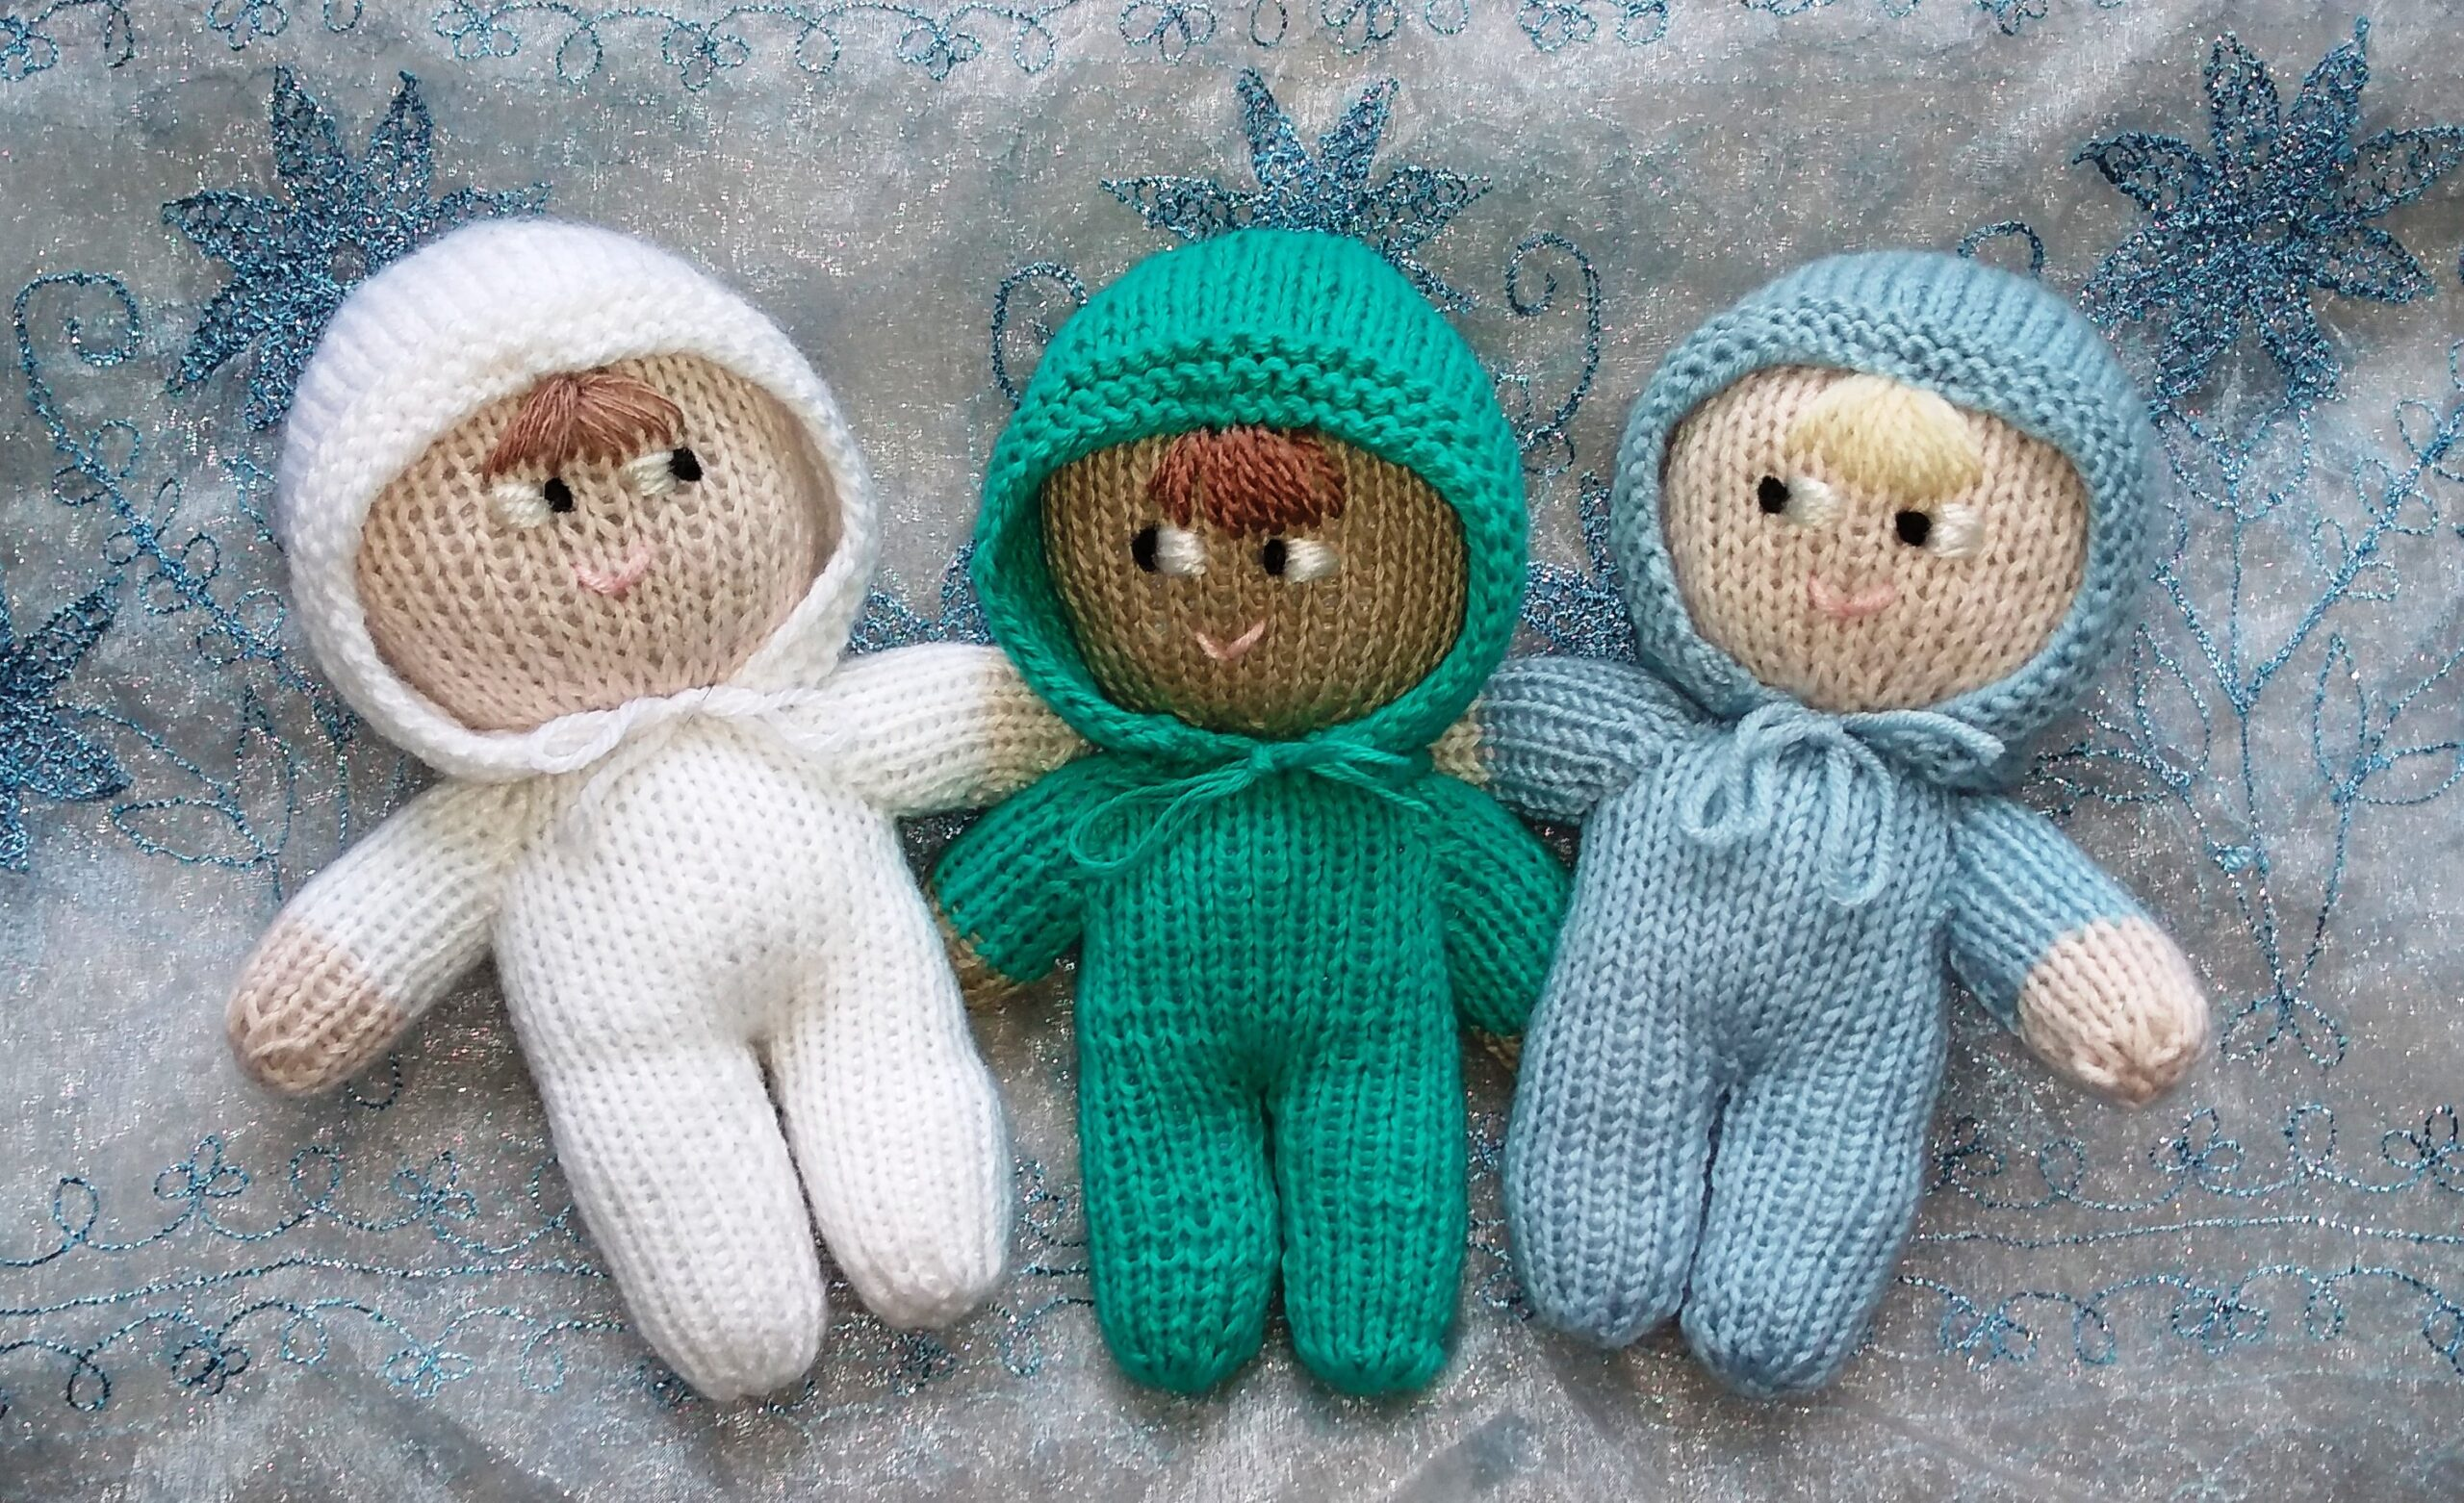 3 woolly nystagmus mascots